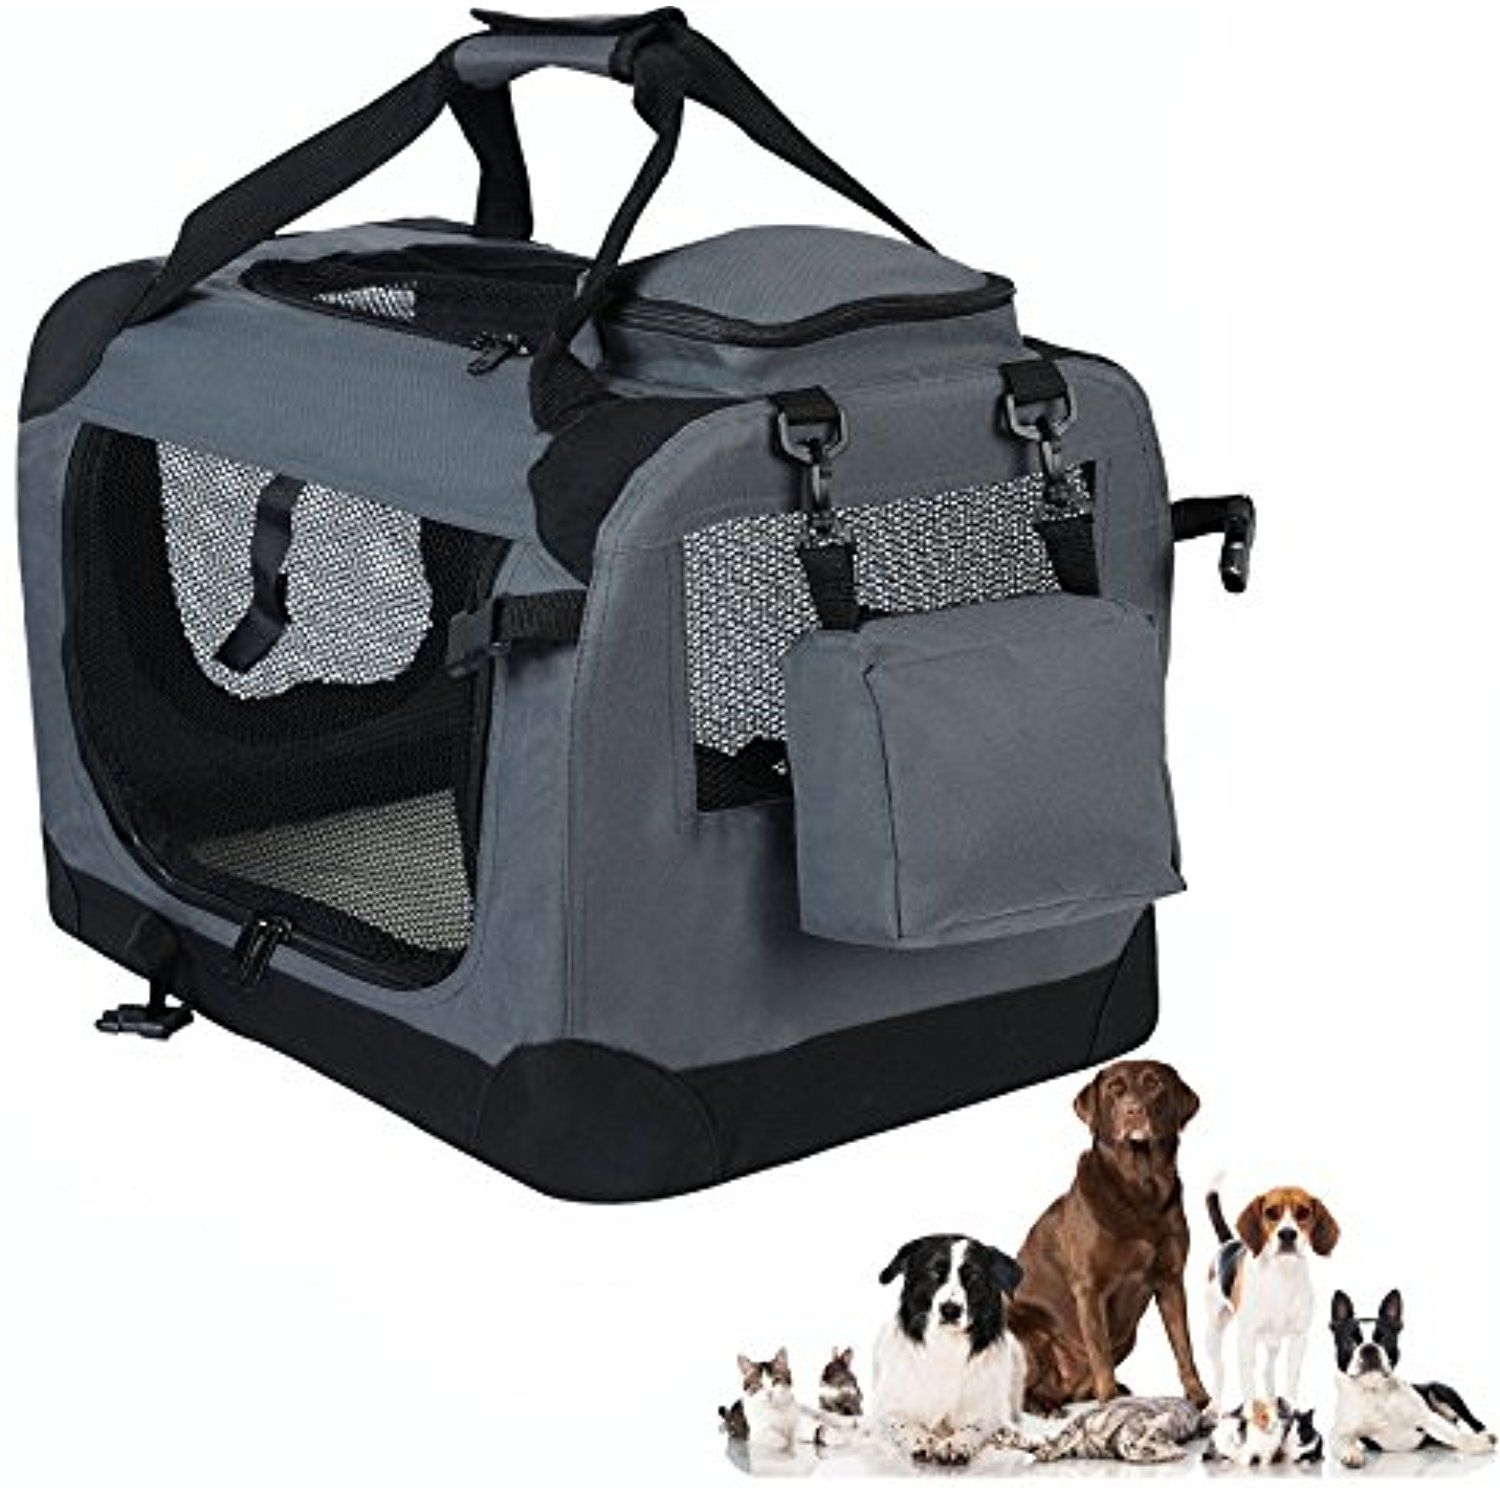 Woltu Soft Pet Carrier Folding Cat Dog Crate Indoor Outdoor Pet Home Grey To View Further For This Item Soft Dog Crates Soft Pet Carrier Folding Dog Crate